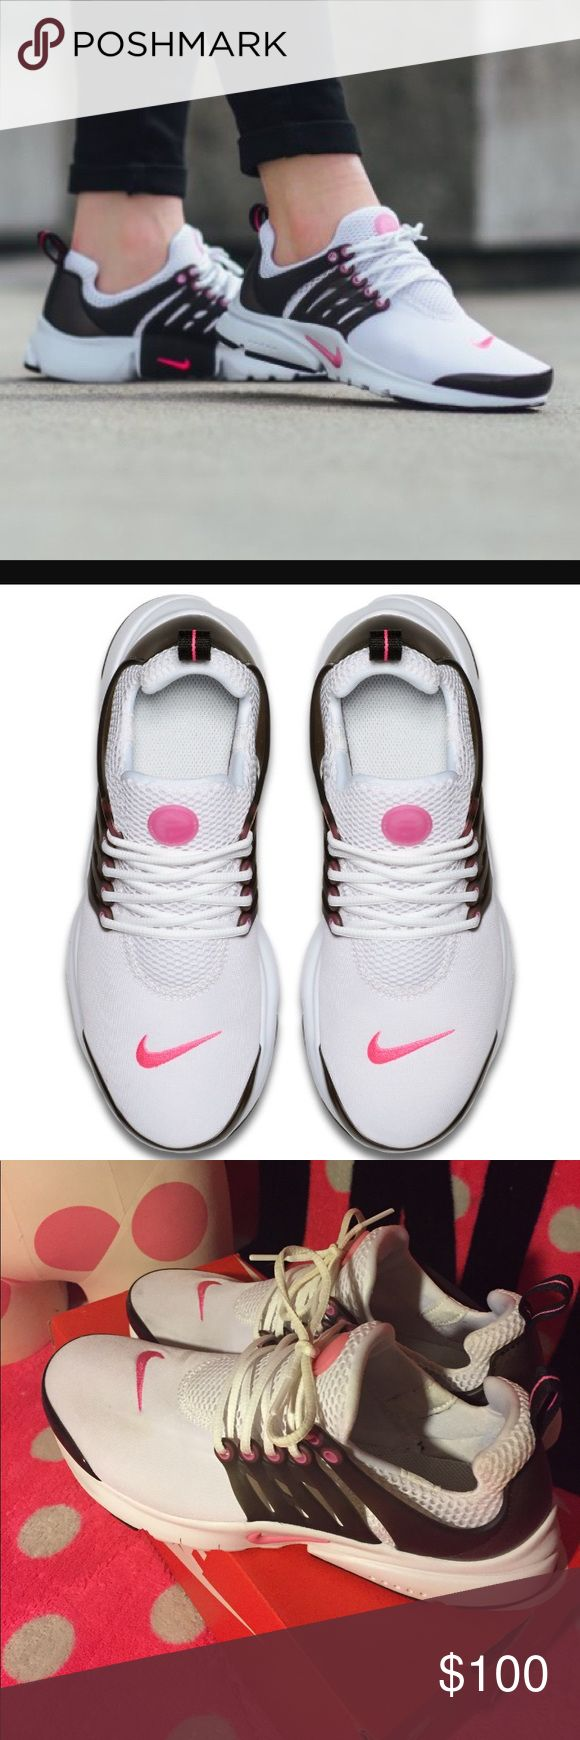 Nike Presto Nike Presto • White / Pink Blast / Black • Youth size 6, Which is also a Women's size 8 • One of my fave styles! I just don't wear them enough • Very Good condition • Worn twice for a brief period of time, right shoe has a very faint spot at the toe area that I tried to photograph - will try and remove before sending ❤️ Comes with original box as shown Nike Shoes